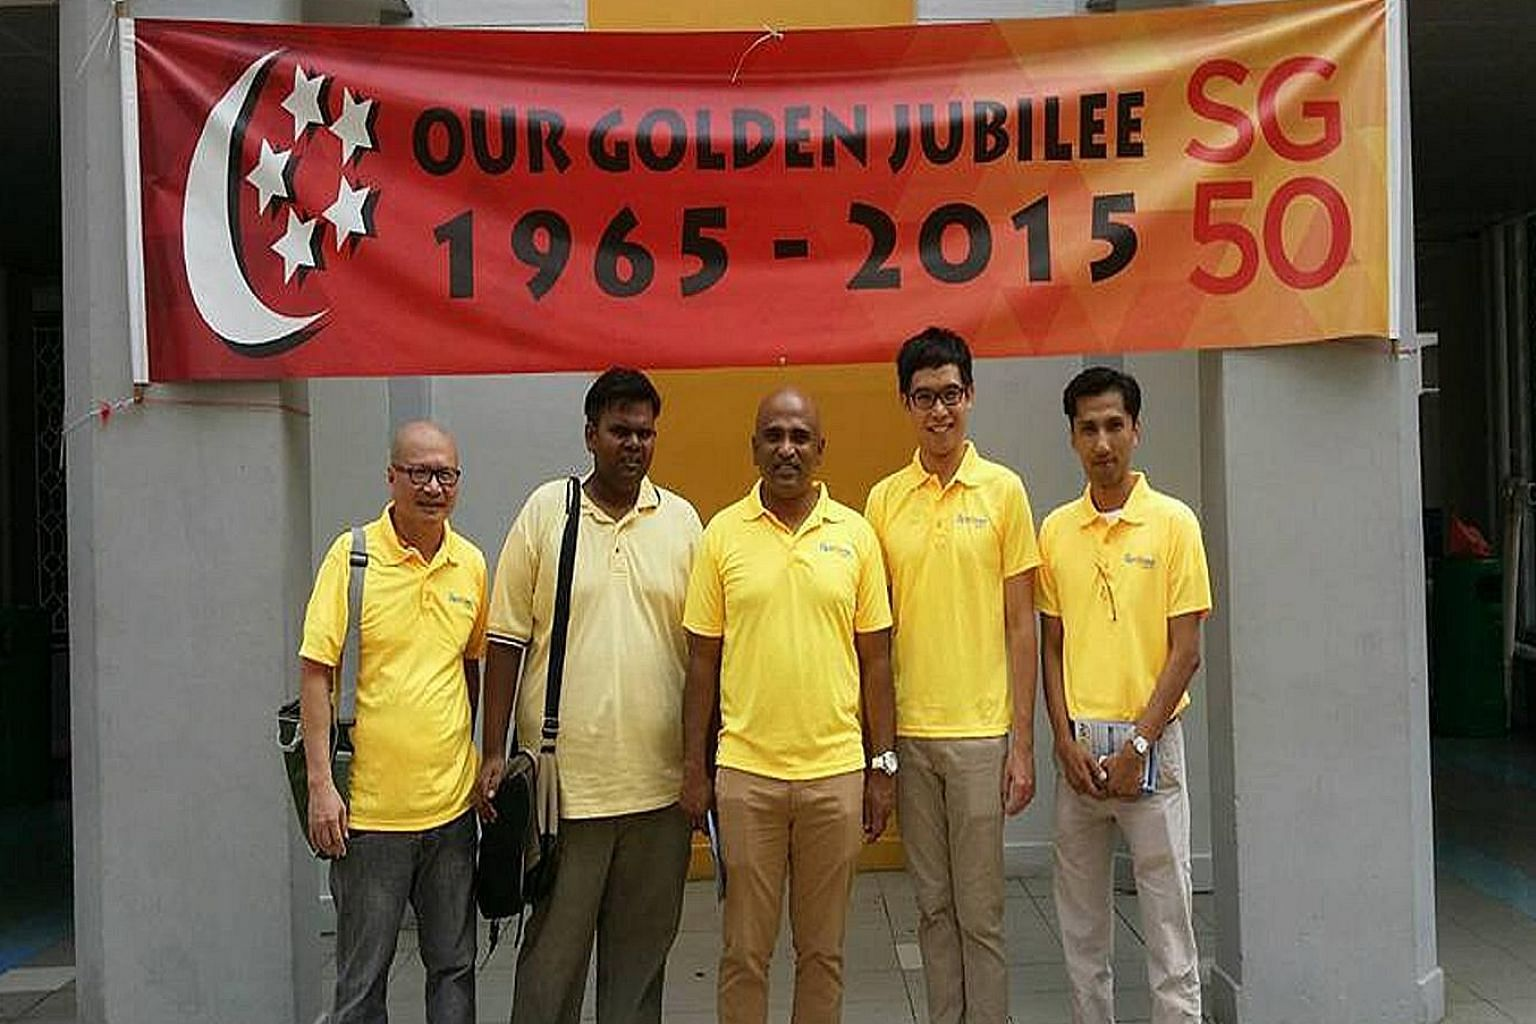 (From left) Mr Gilbert Ong, Mr Siva Chandran, Mr M. Ravi, Mr Roy Ngerng and Mr Osman Sulaiman wearing Reform Party T-shirts during their walkabout in Ang Mo Kio on Sunday. Mr Osman is likely to spearhead the party's Ang Mo Kio GRC team.